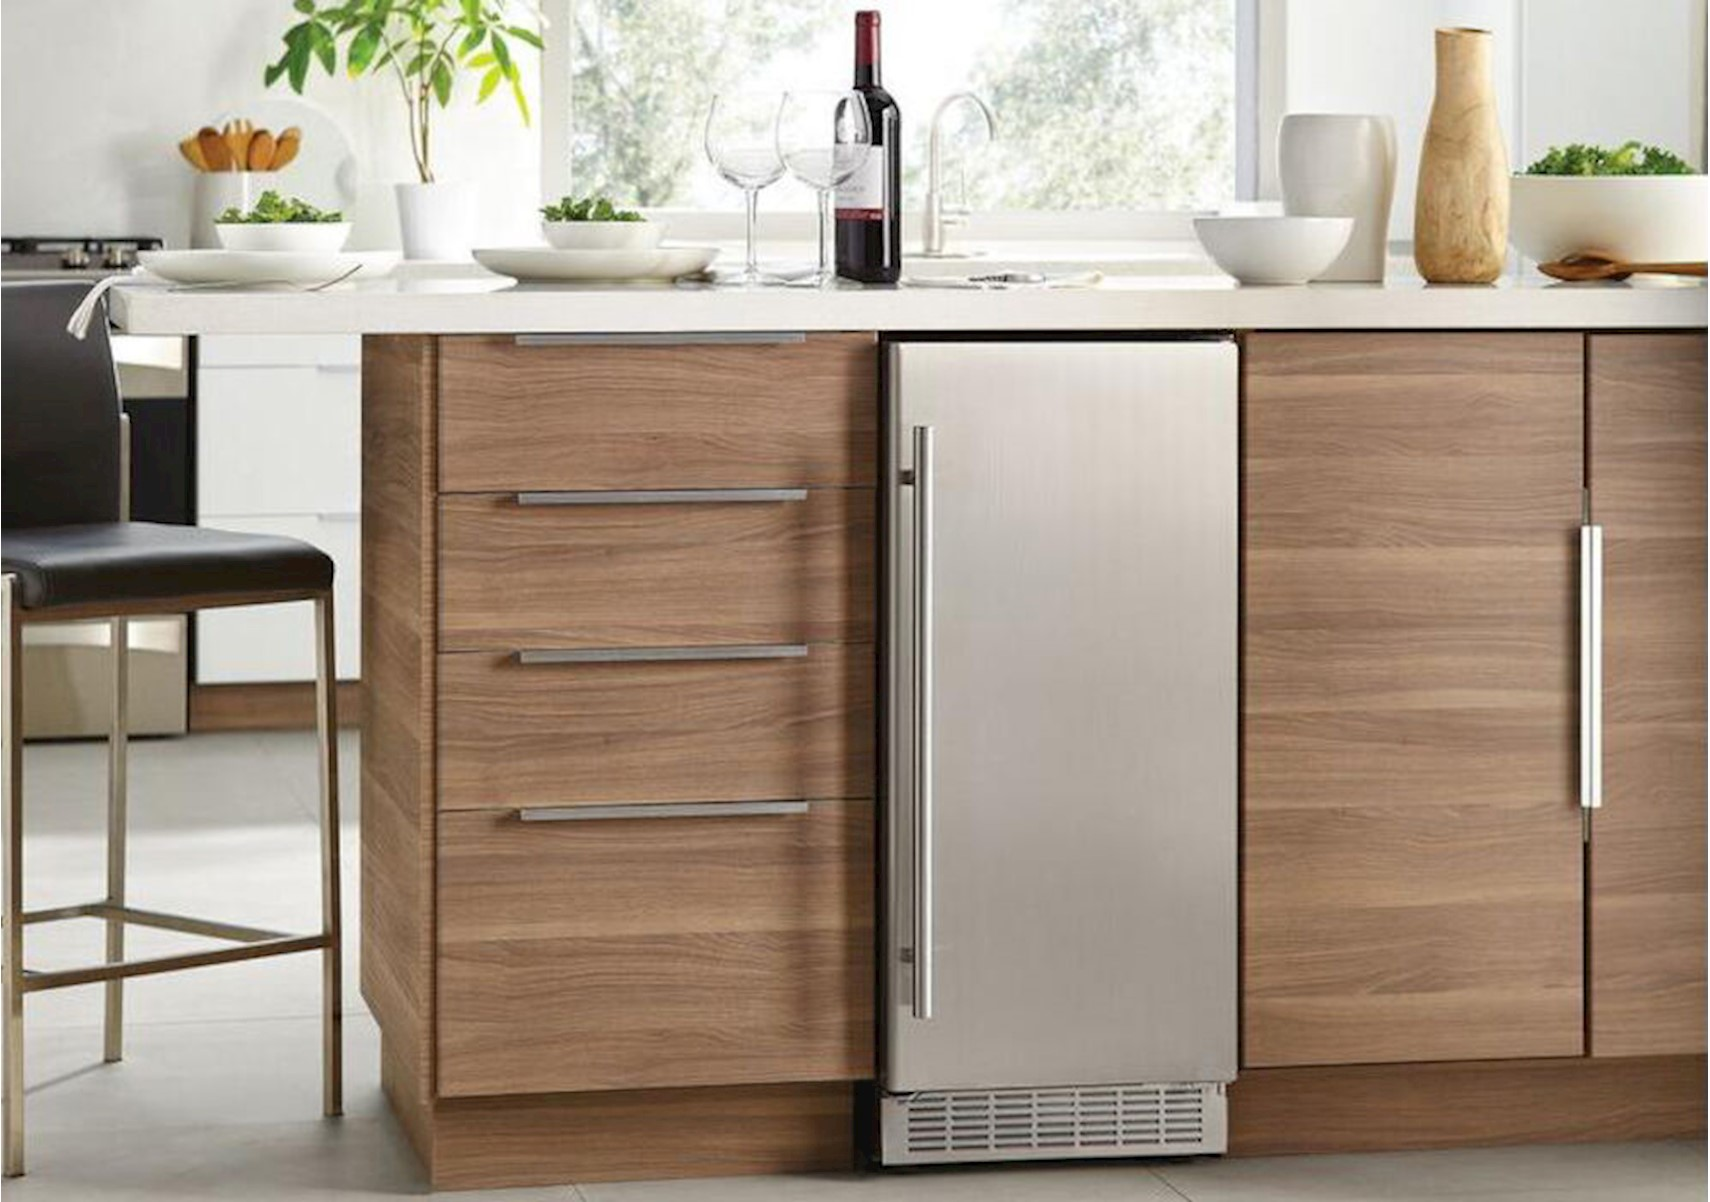 Lacks Danby Silhouette 15 Under Counter Ice Maker